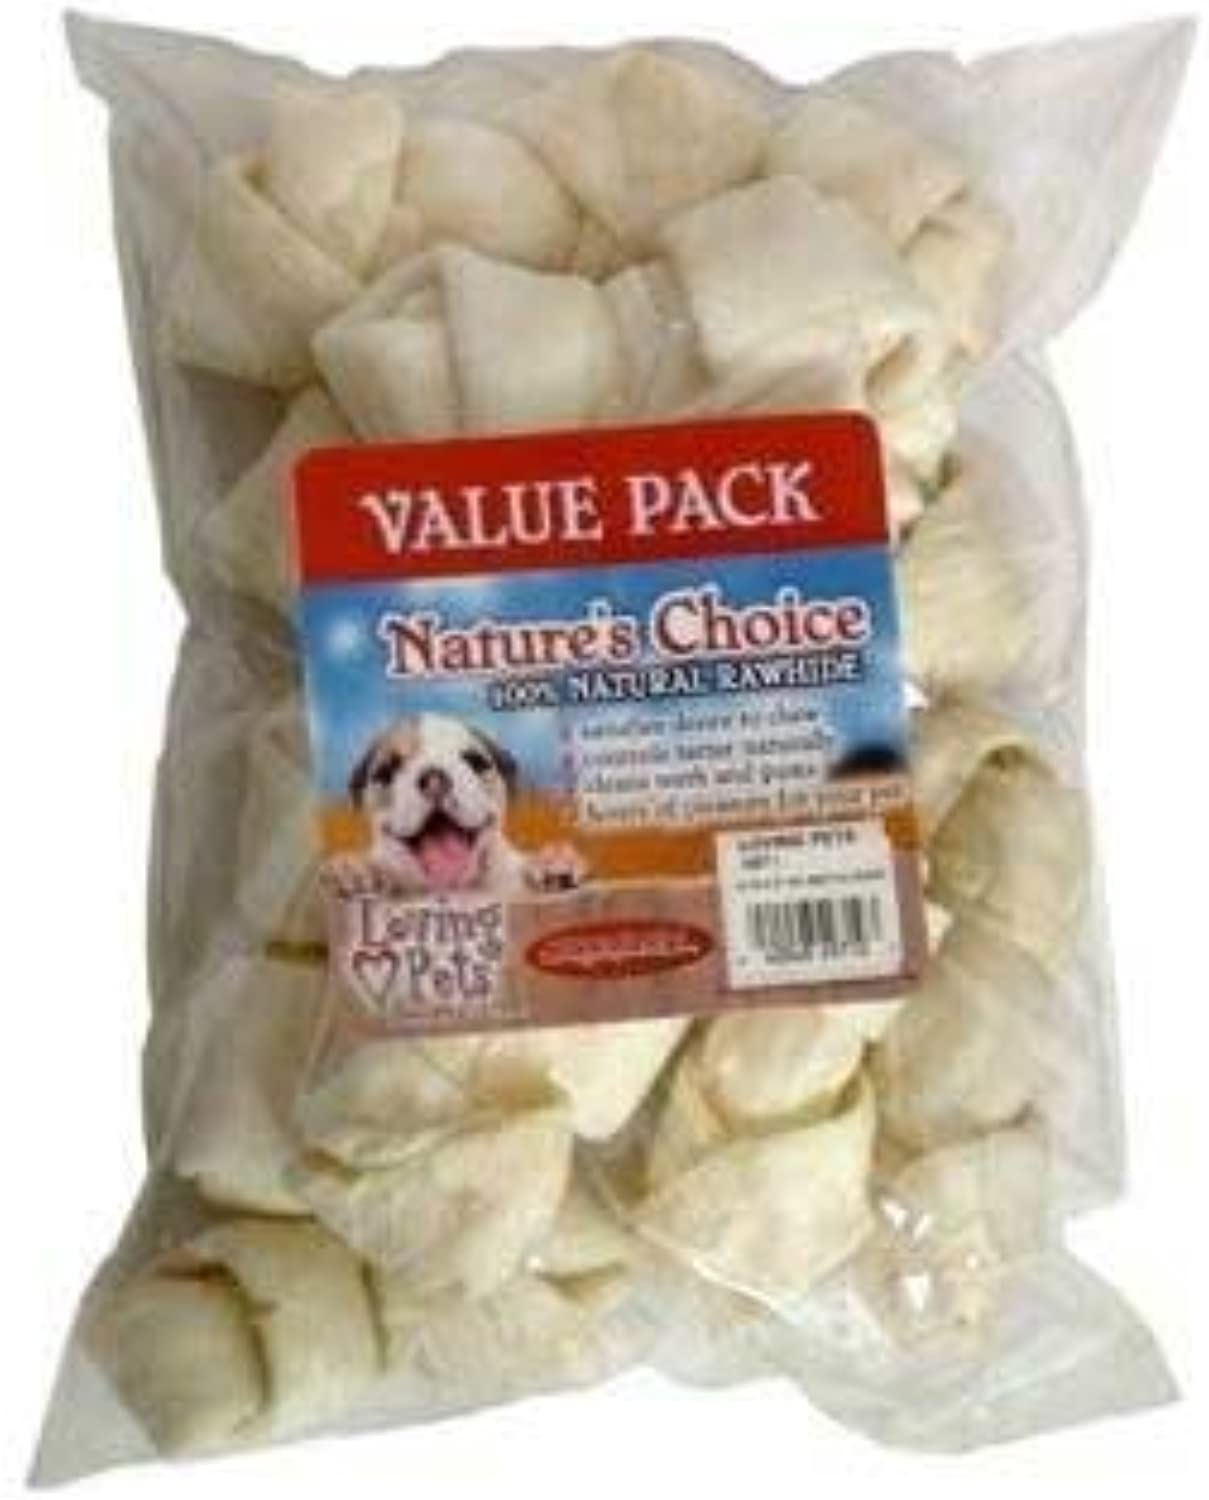 Loving Pets Dlv4971 10Pack Natures Choice Natural Knotted Rawhide Bones For Dogs, 5Inch, White